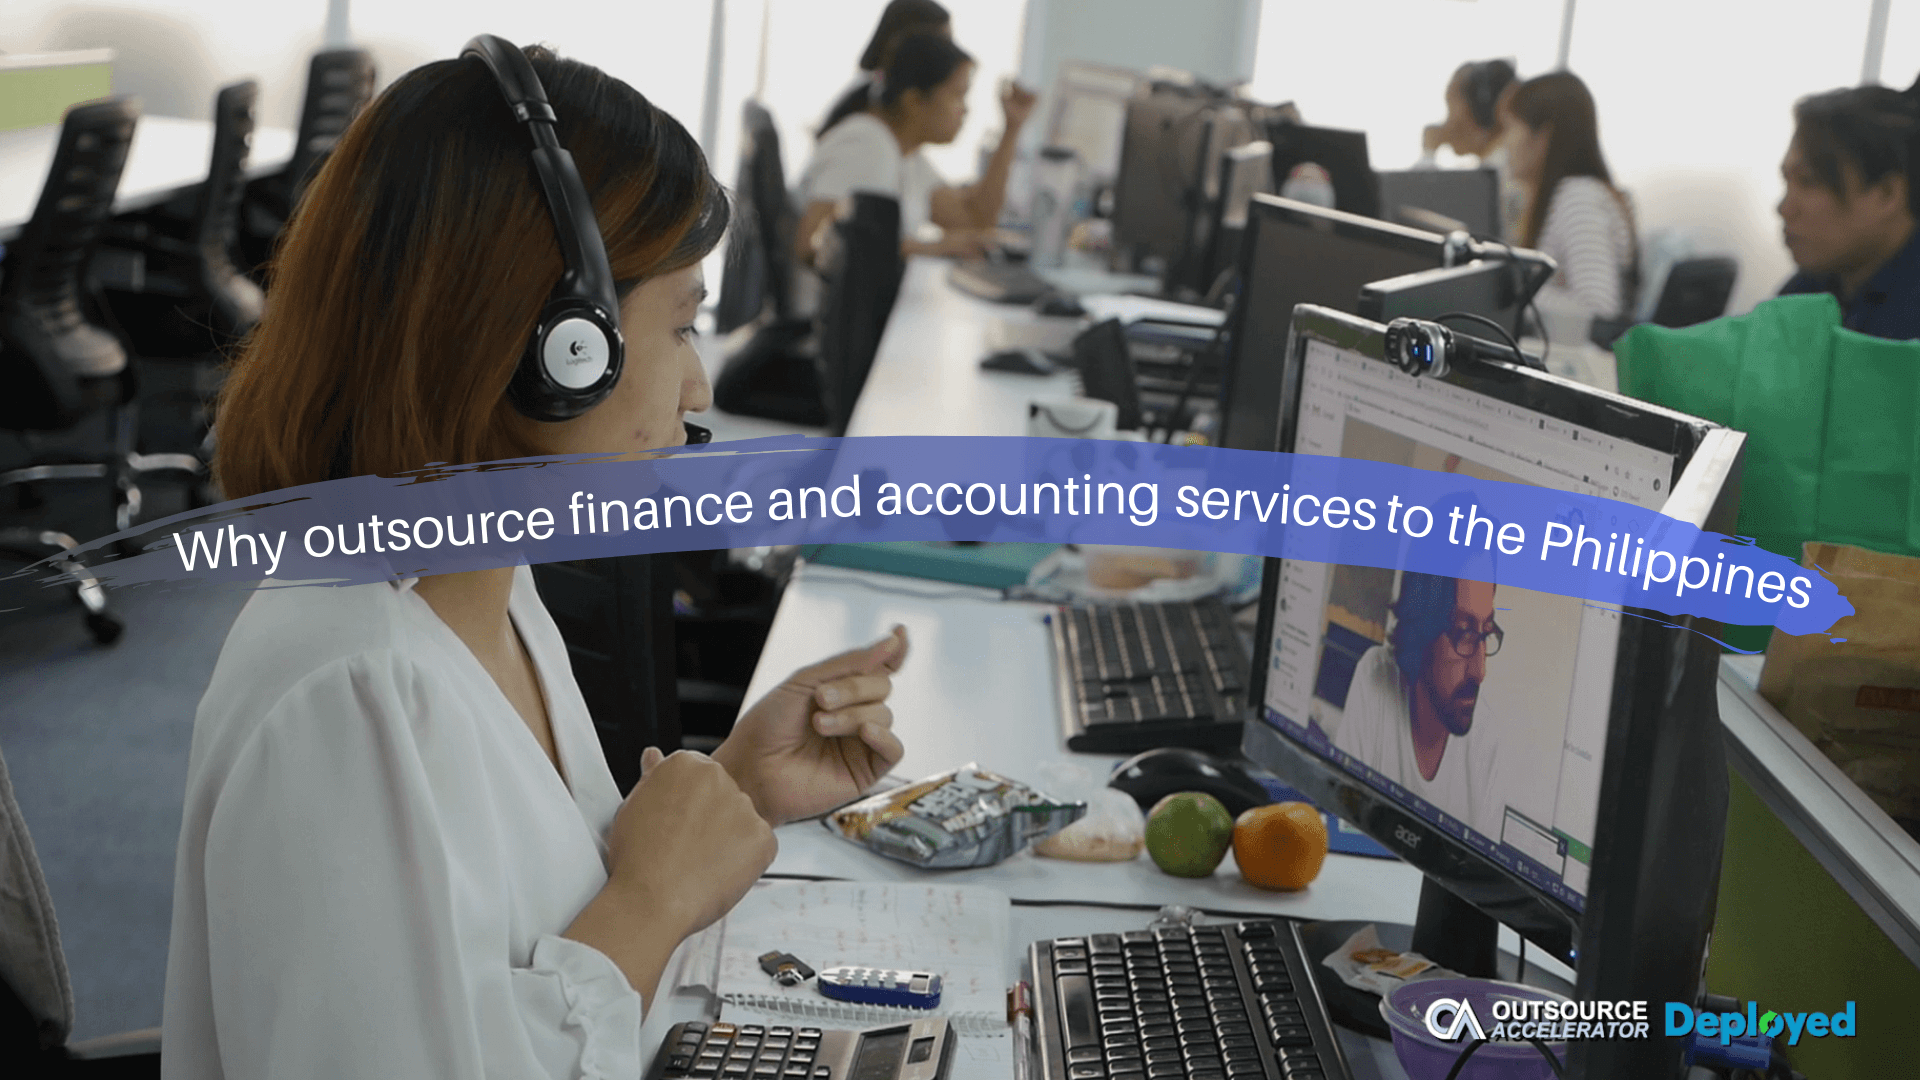 Why outsource finance and accounting services to the Philippines